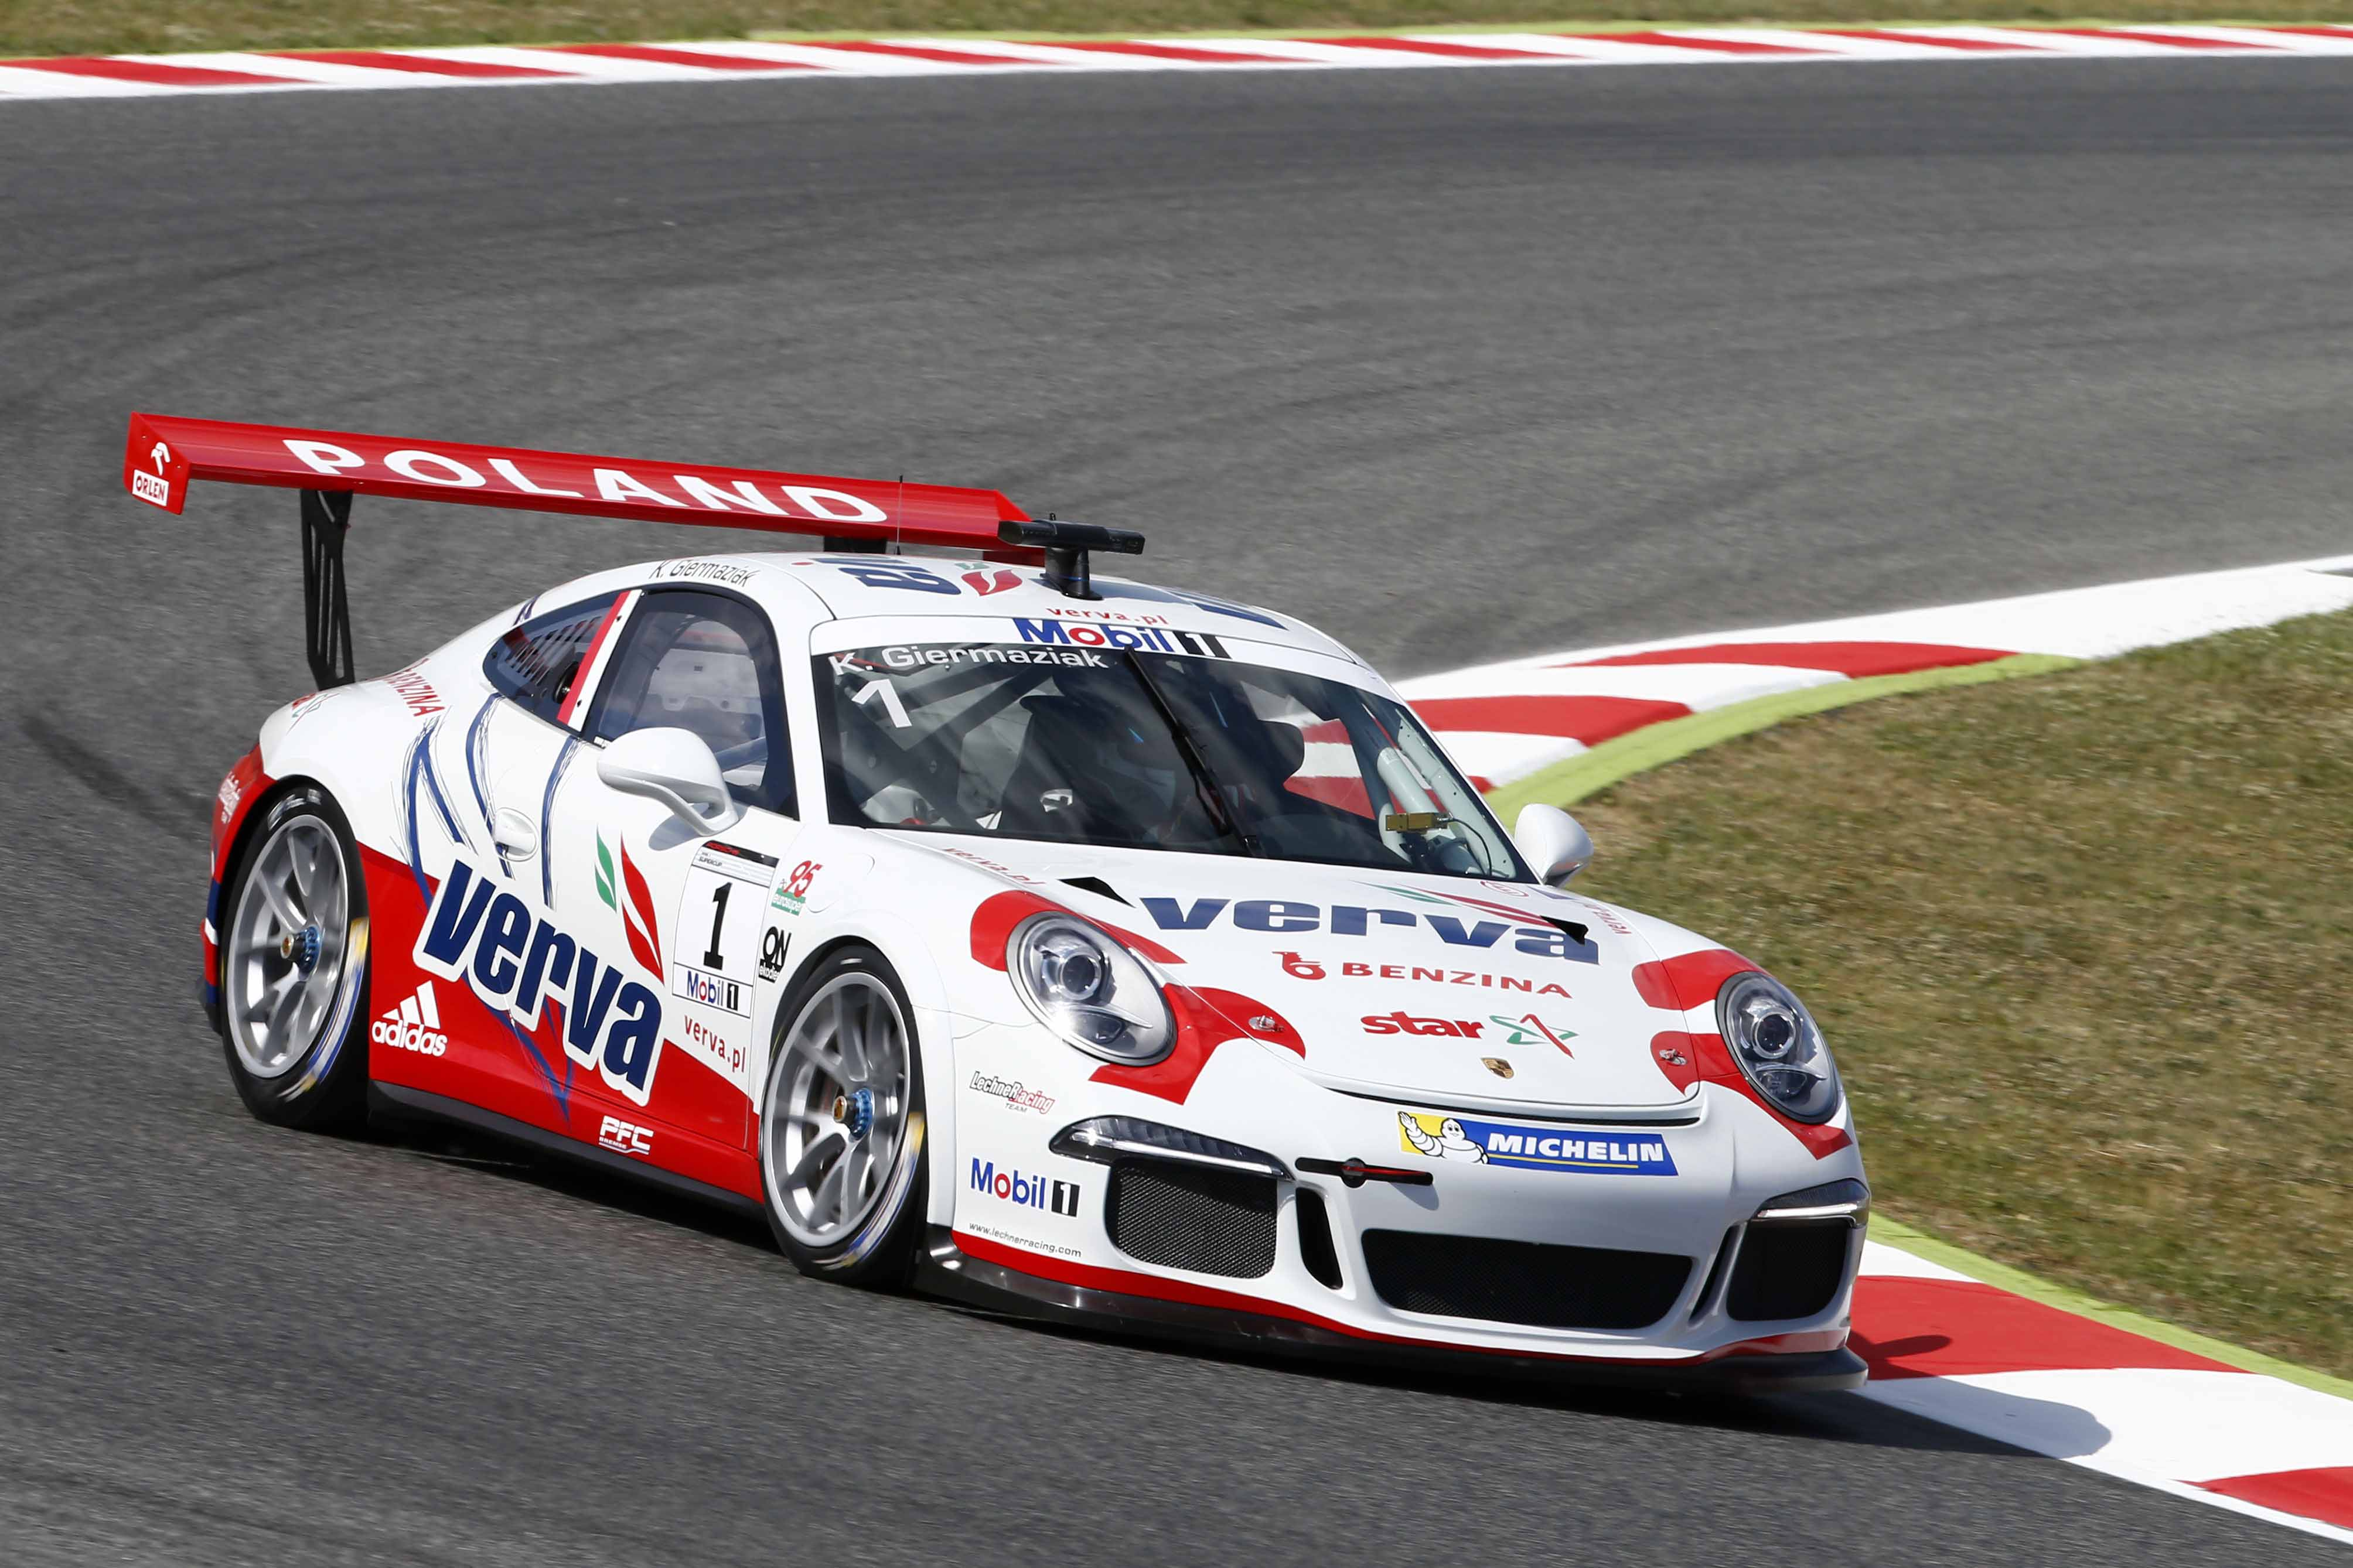 26_porsche_verva_lechner_racing_teamcorlen_deutschland_gmbh.jpg.crop_display.jpg